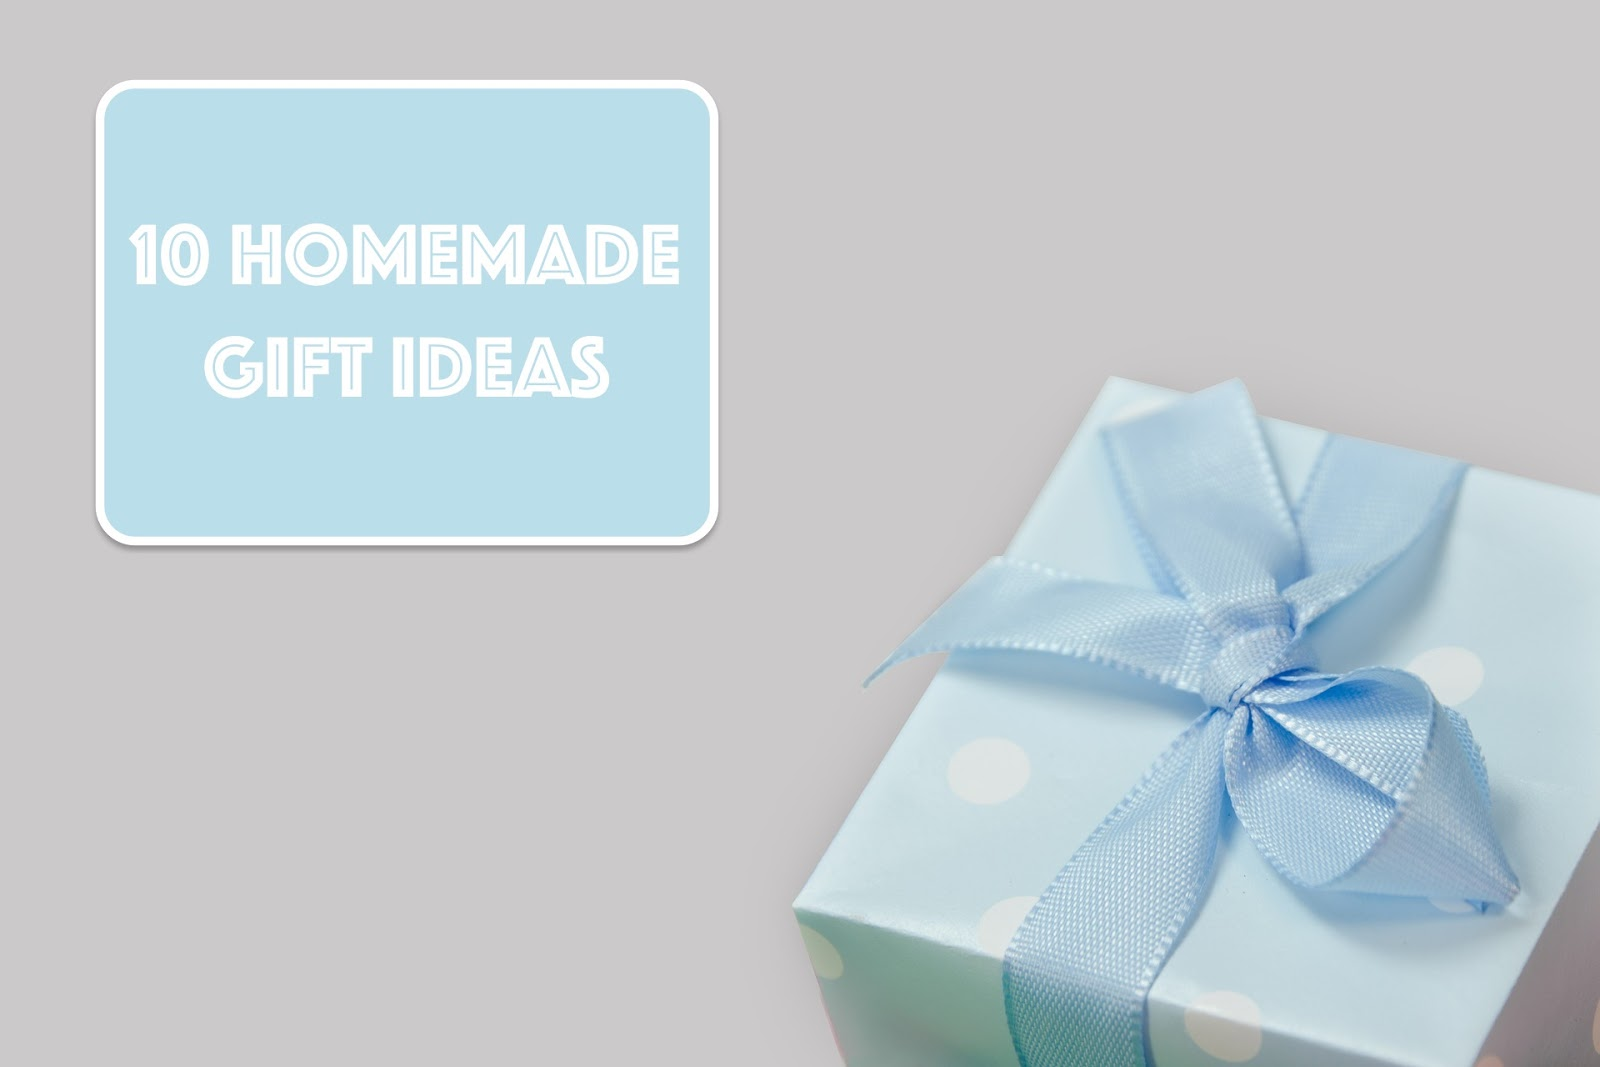 Home-Cooked & Handmade: 10 Homemade Gift Ideas